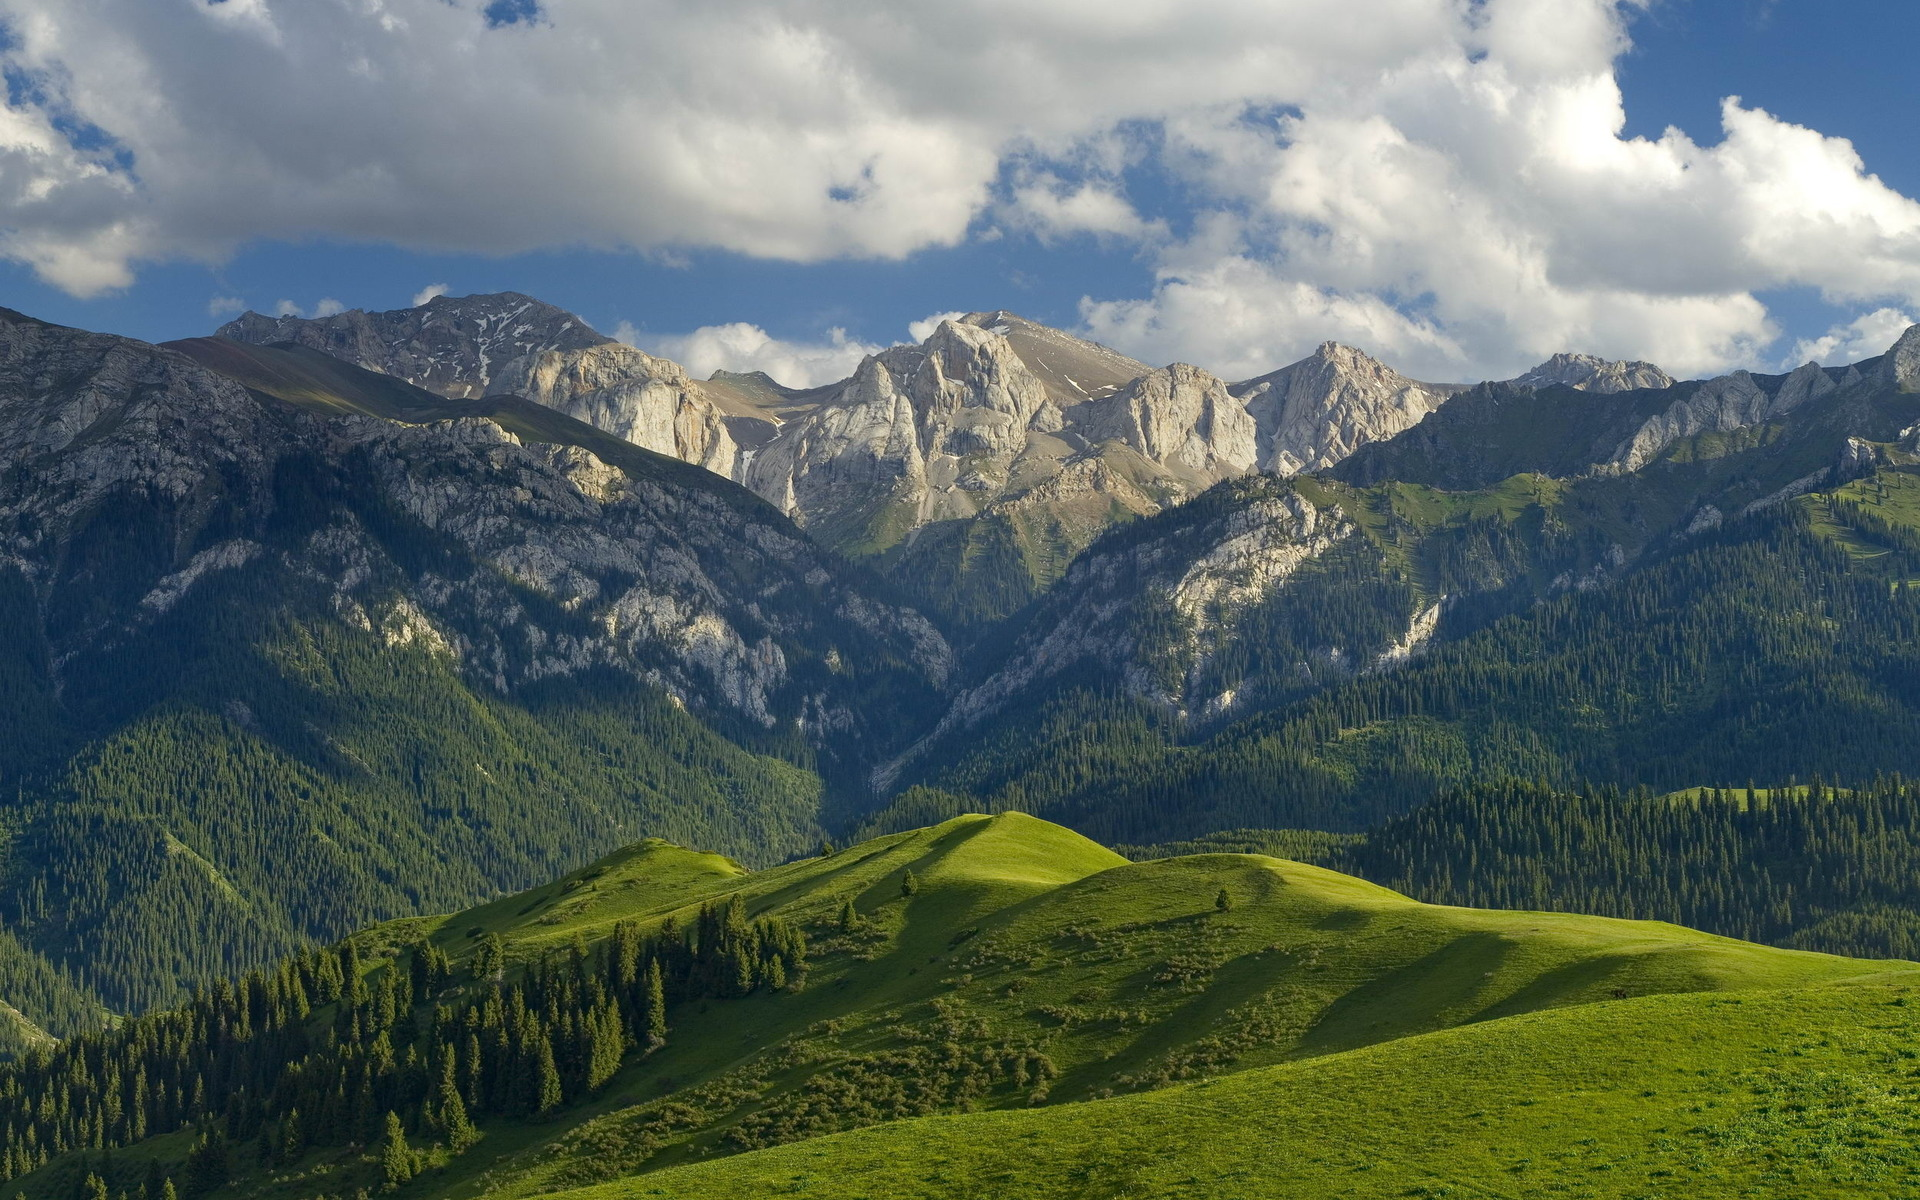 Nature Mountains Landscape Images Download Picture